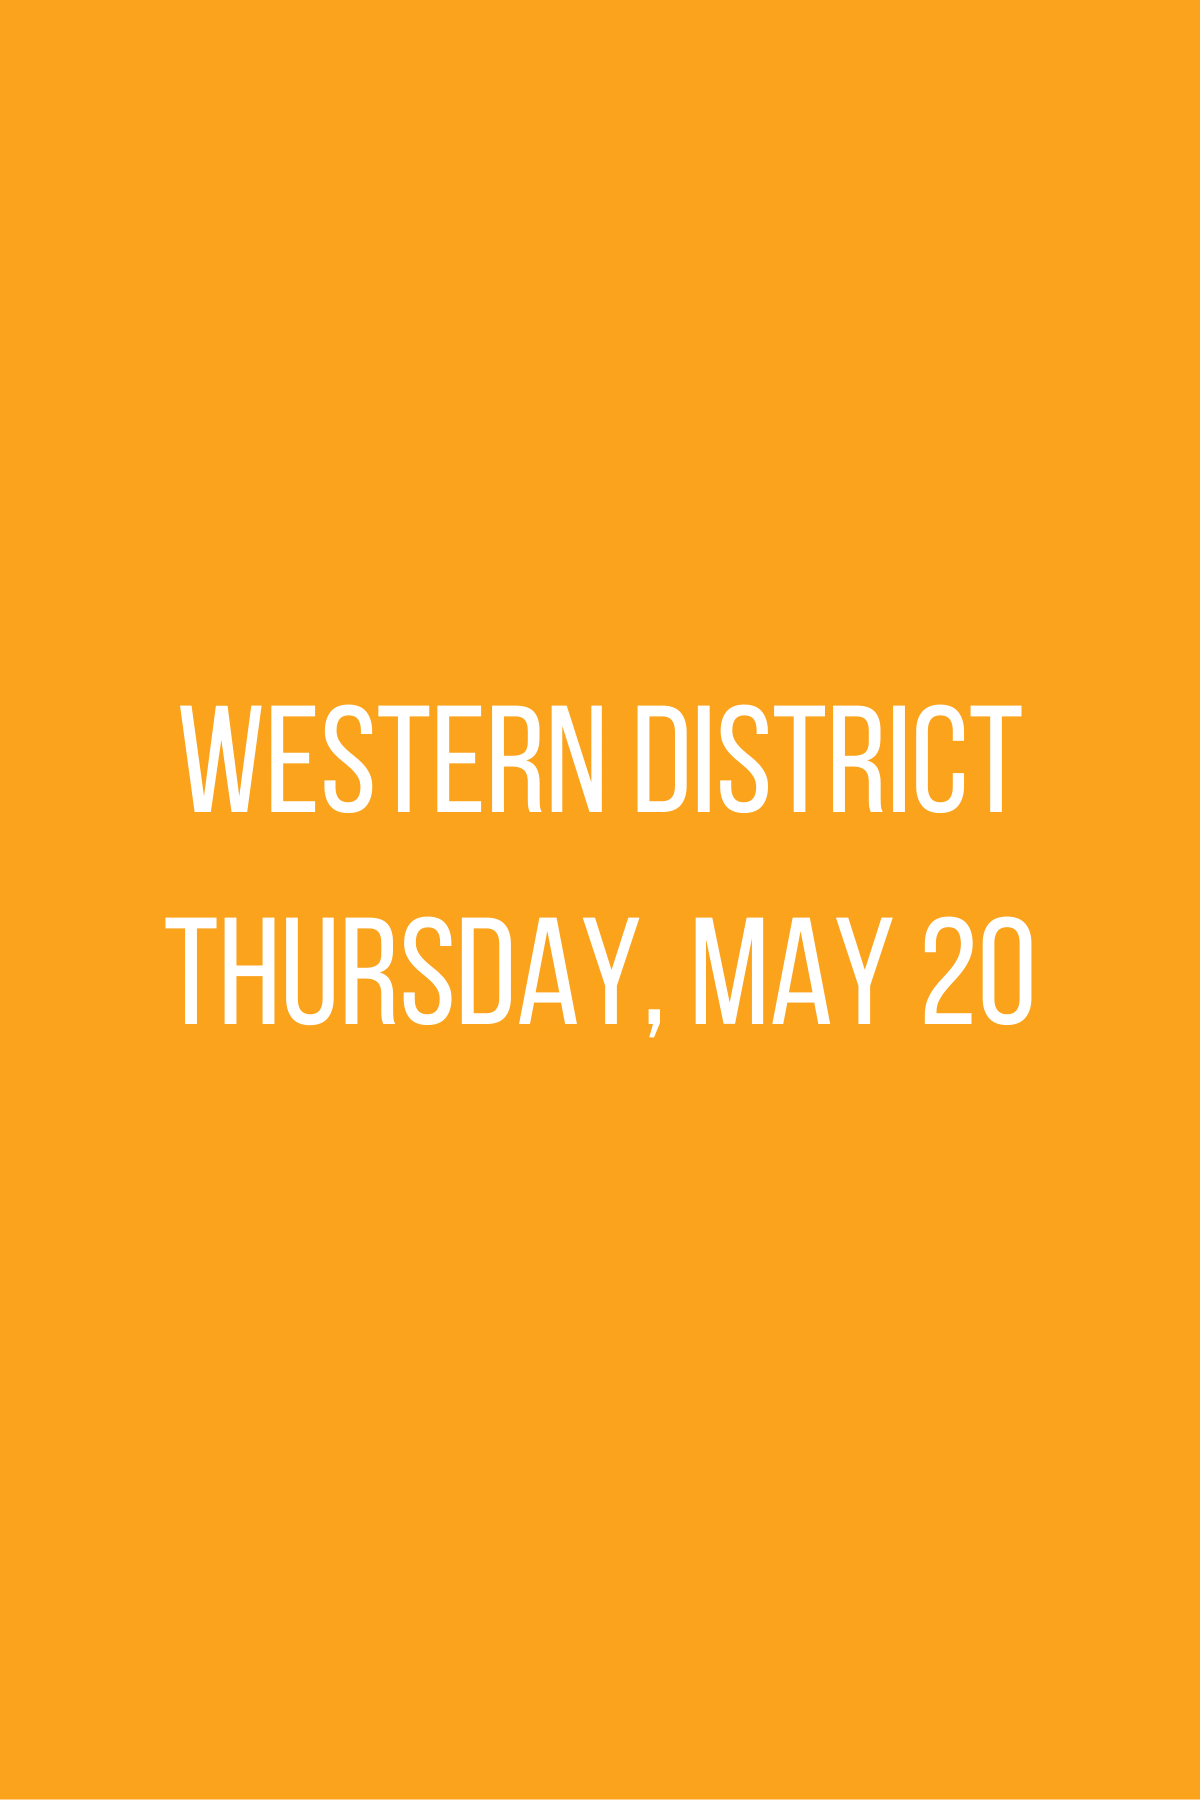 Western District Meeting - Thursday, May 20